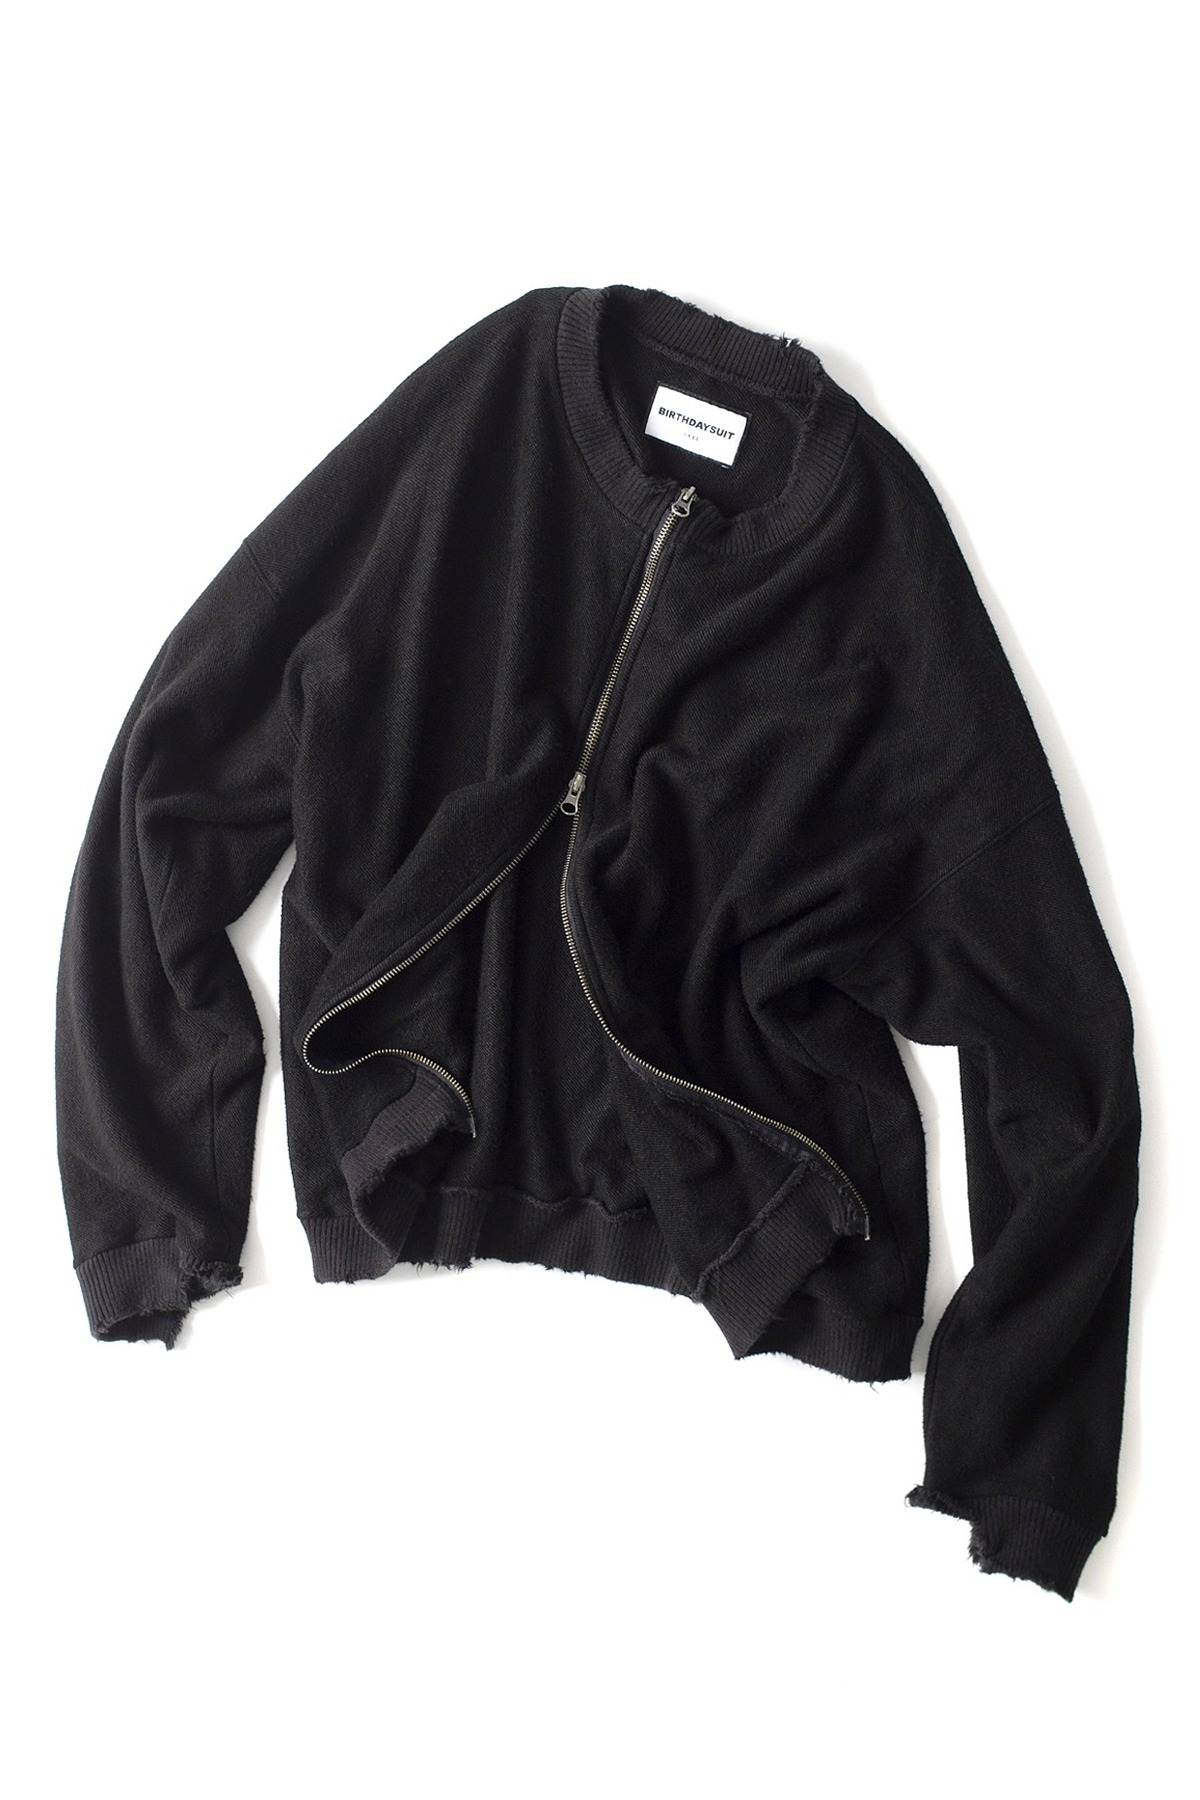 BIRTHDAYSUIT : Super Soft Sweat Zip up (Black)